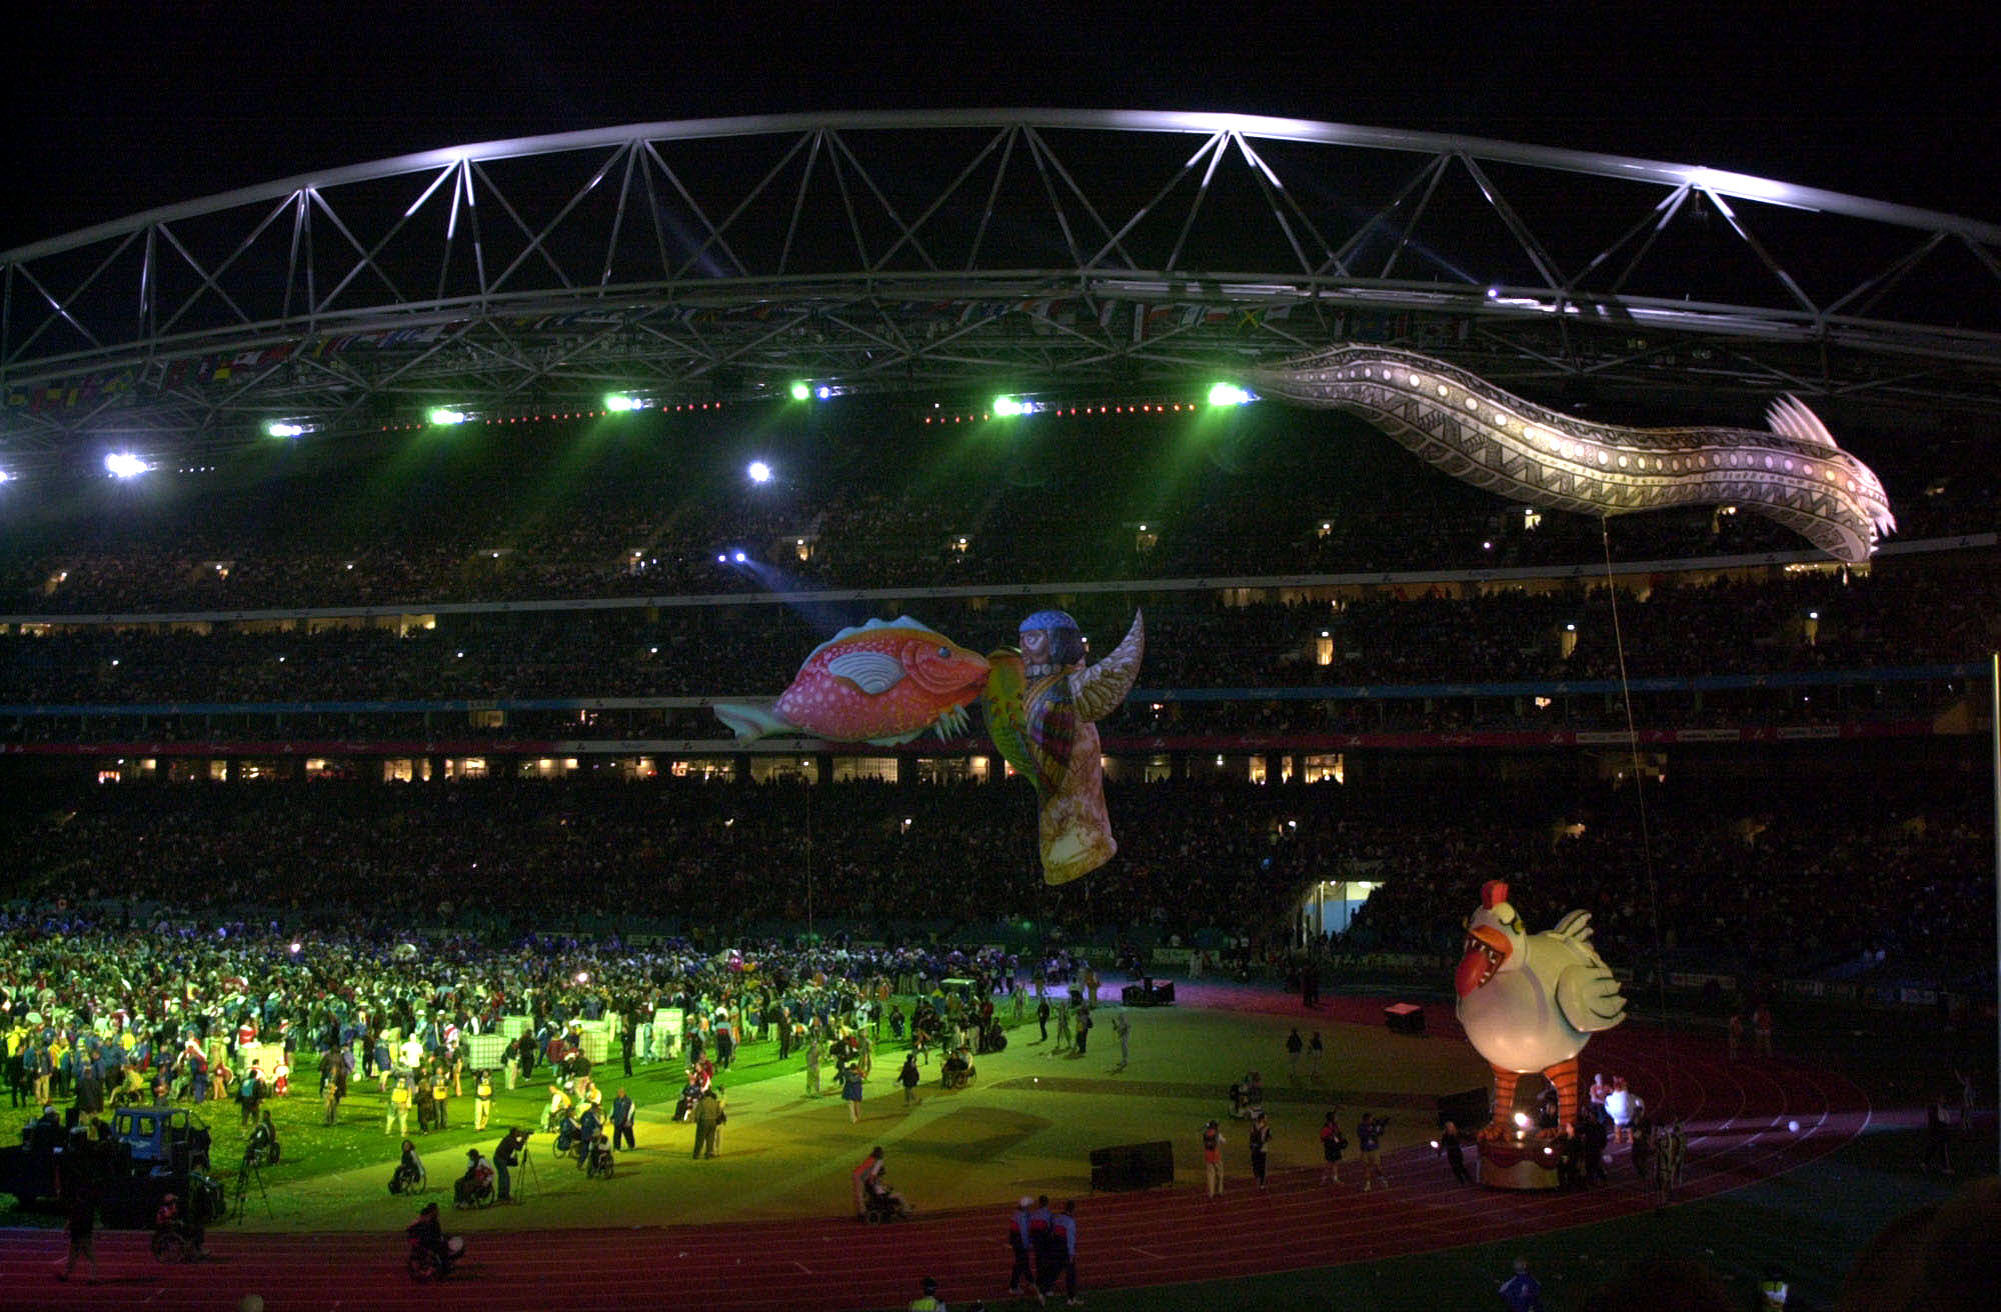 sydney 2000 closing ceremony download itunes - photo#20